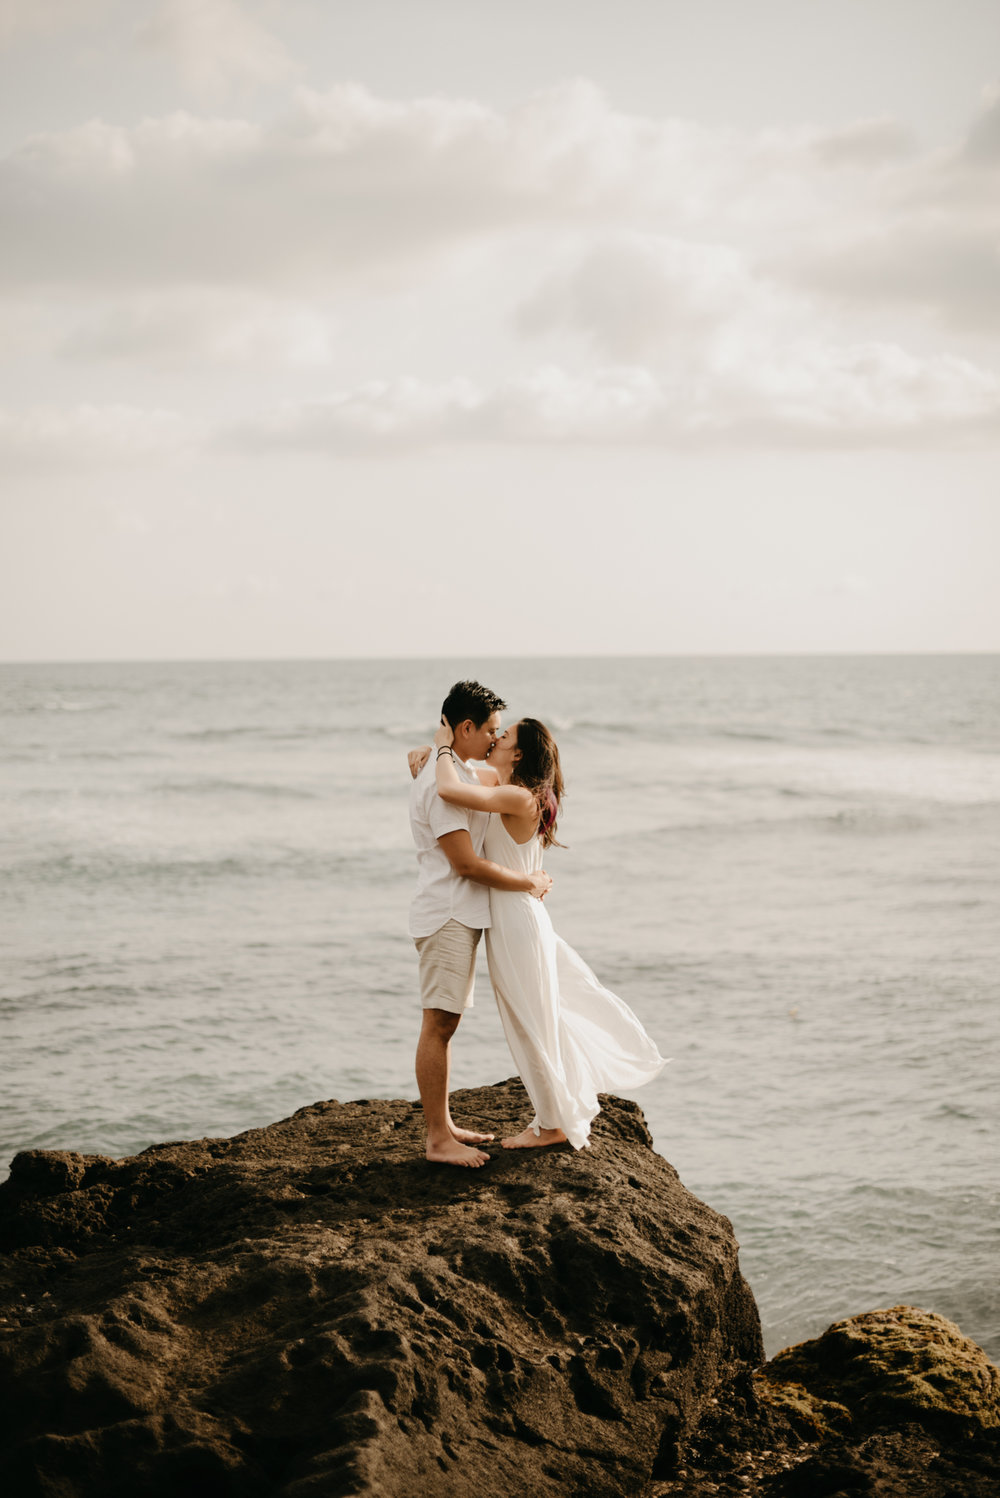 featured-artist-summit-presets-gilang-uthe-9.jpg